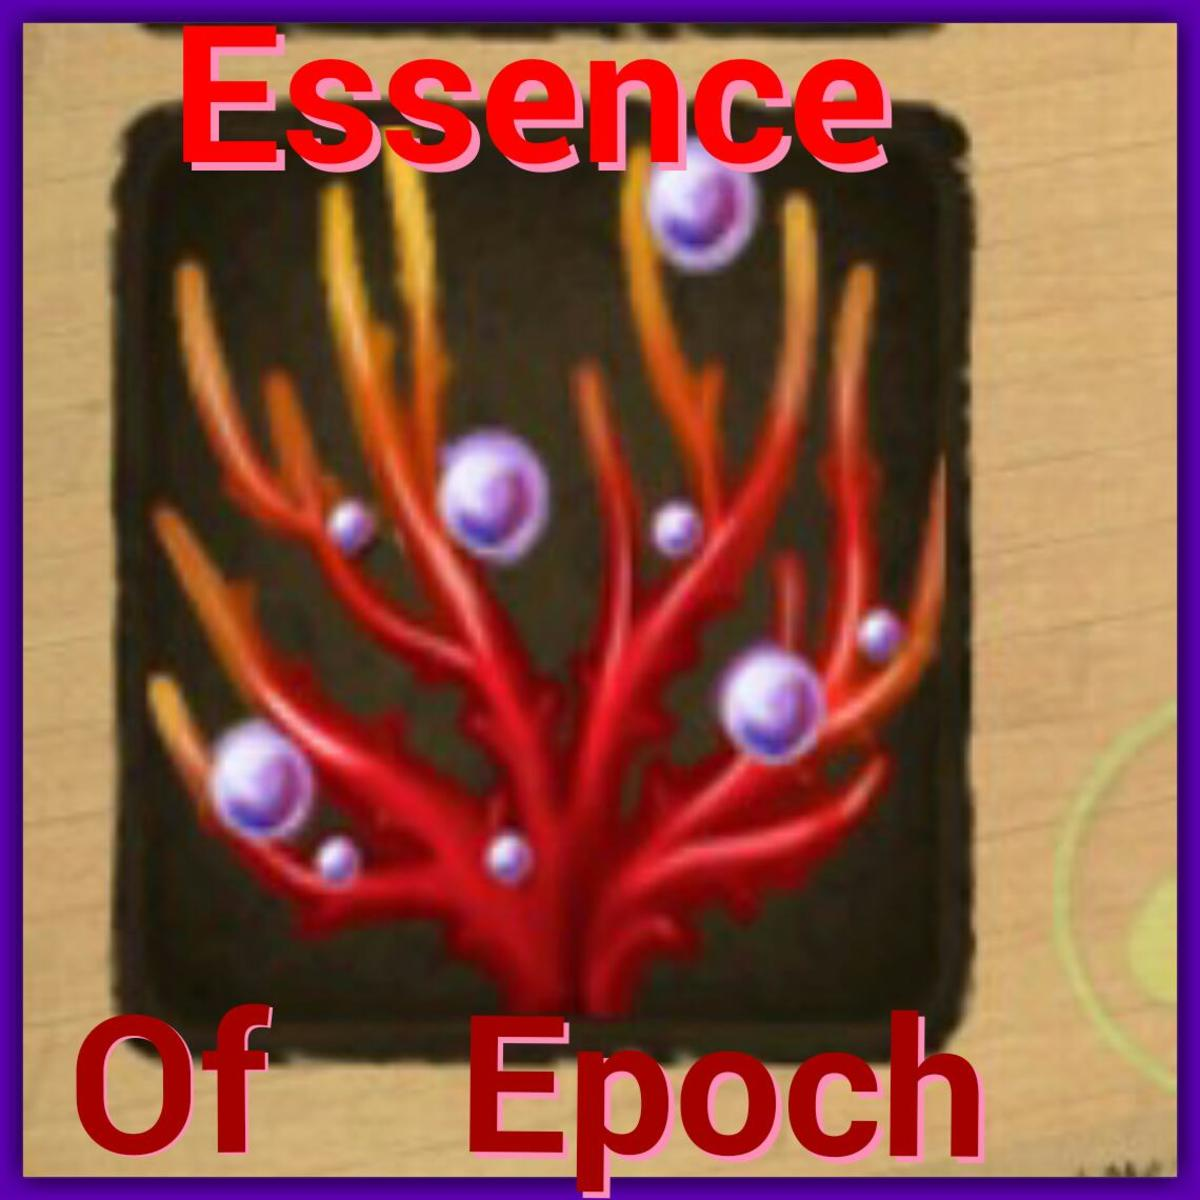 What Are Epoch, Fragments and Dust Used For?